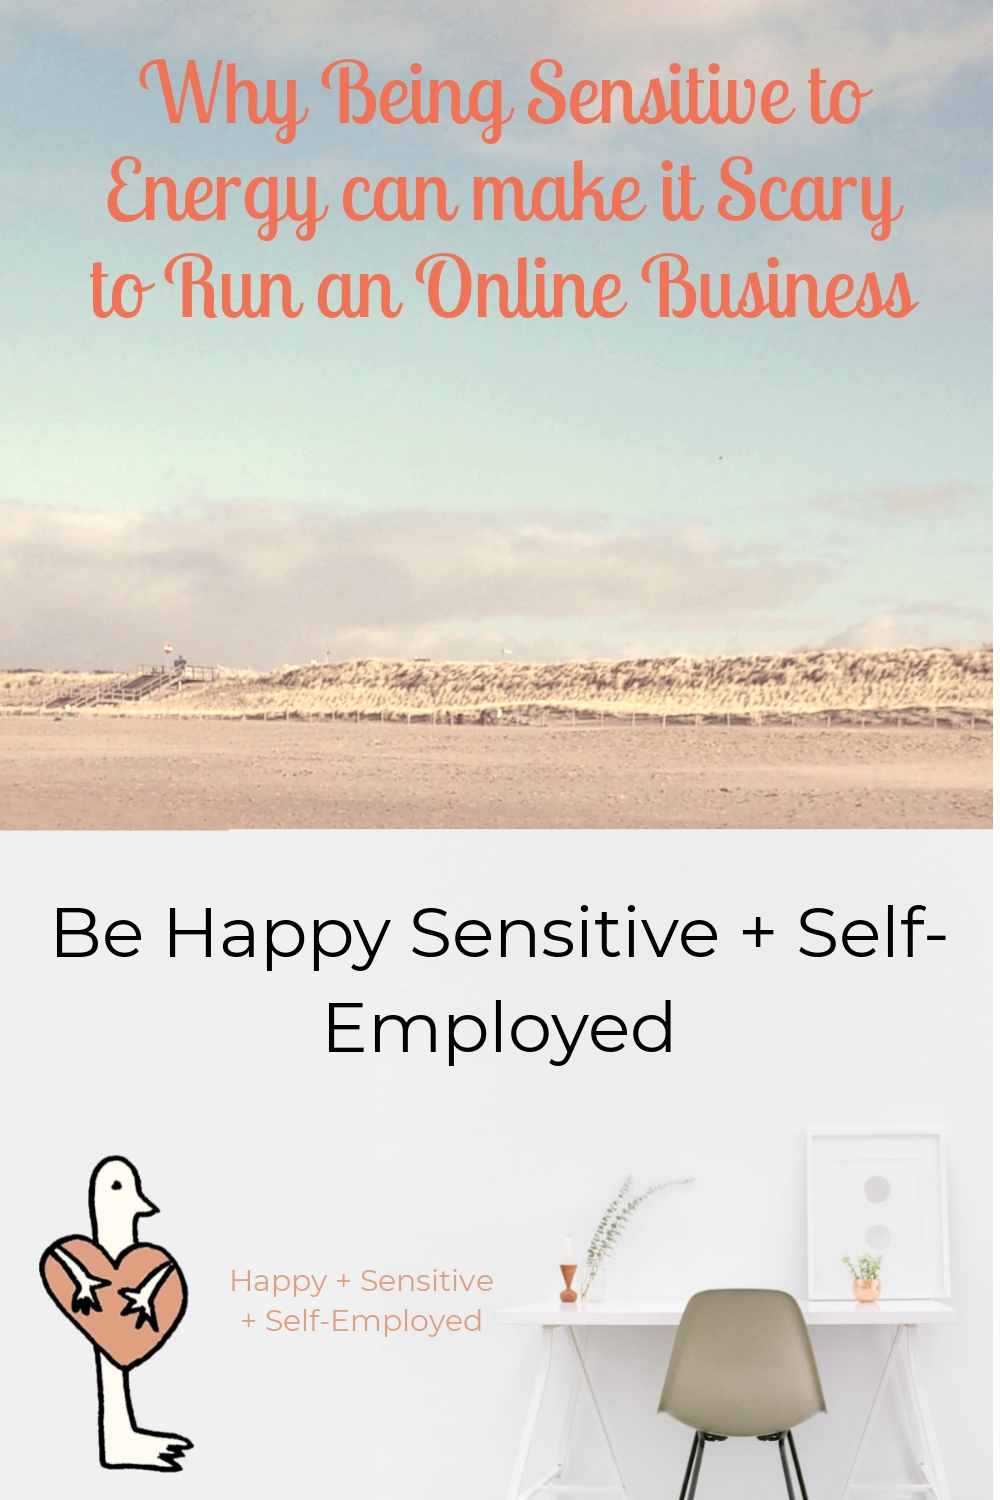 Why Being Sensitive to Energy can make it Scary to Run an Online Business